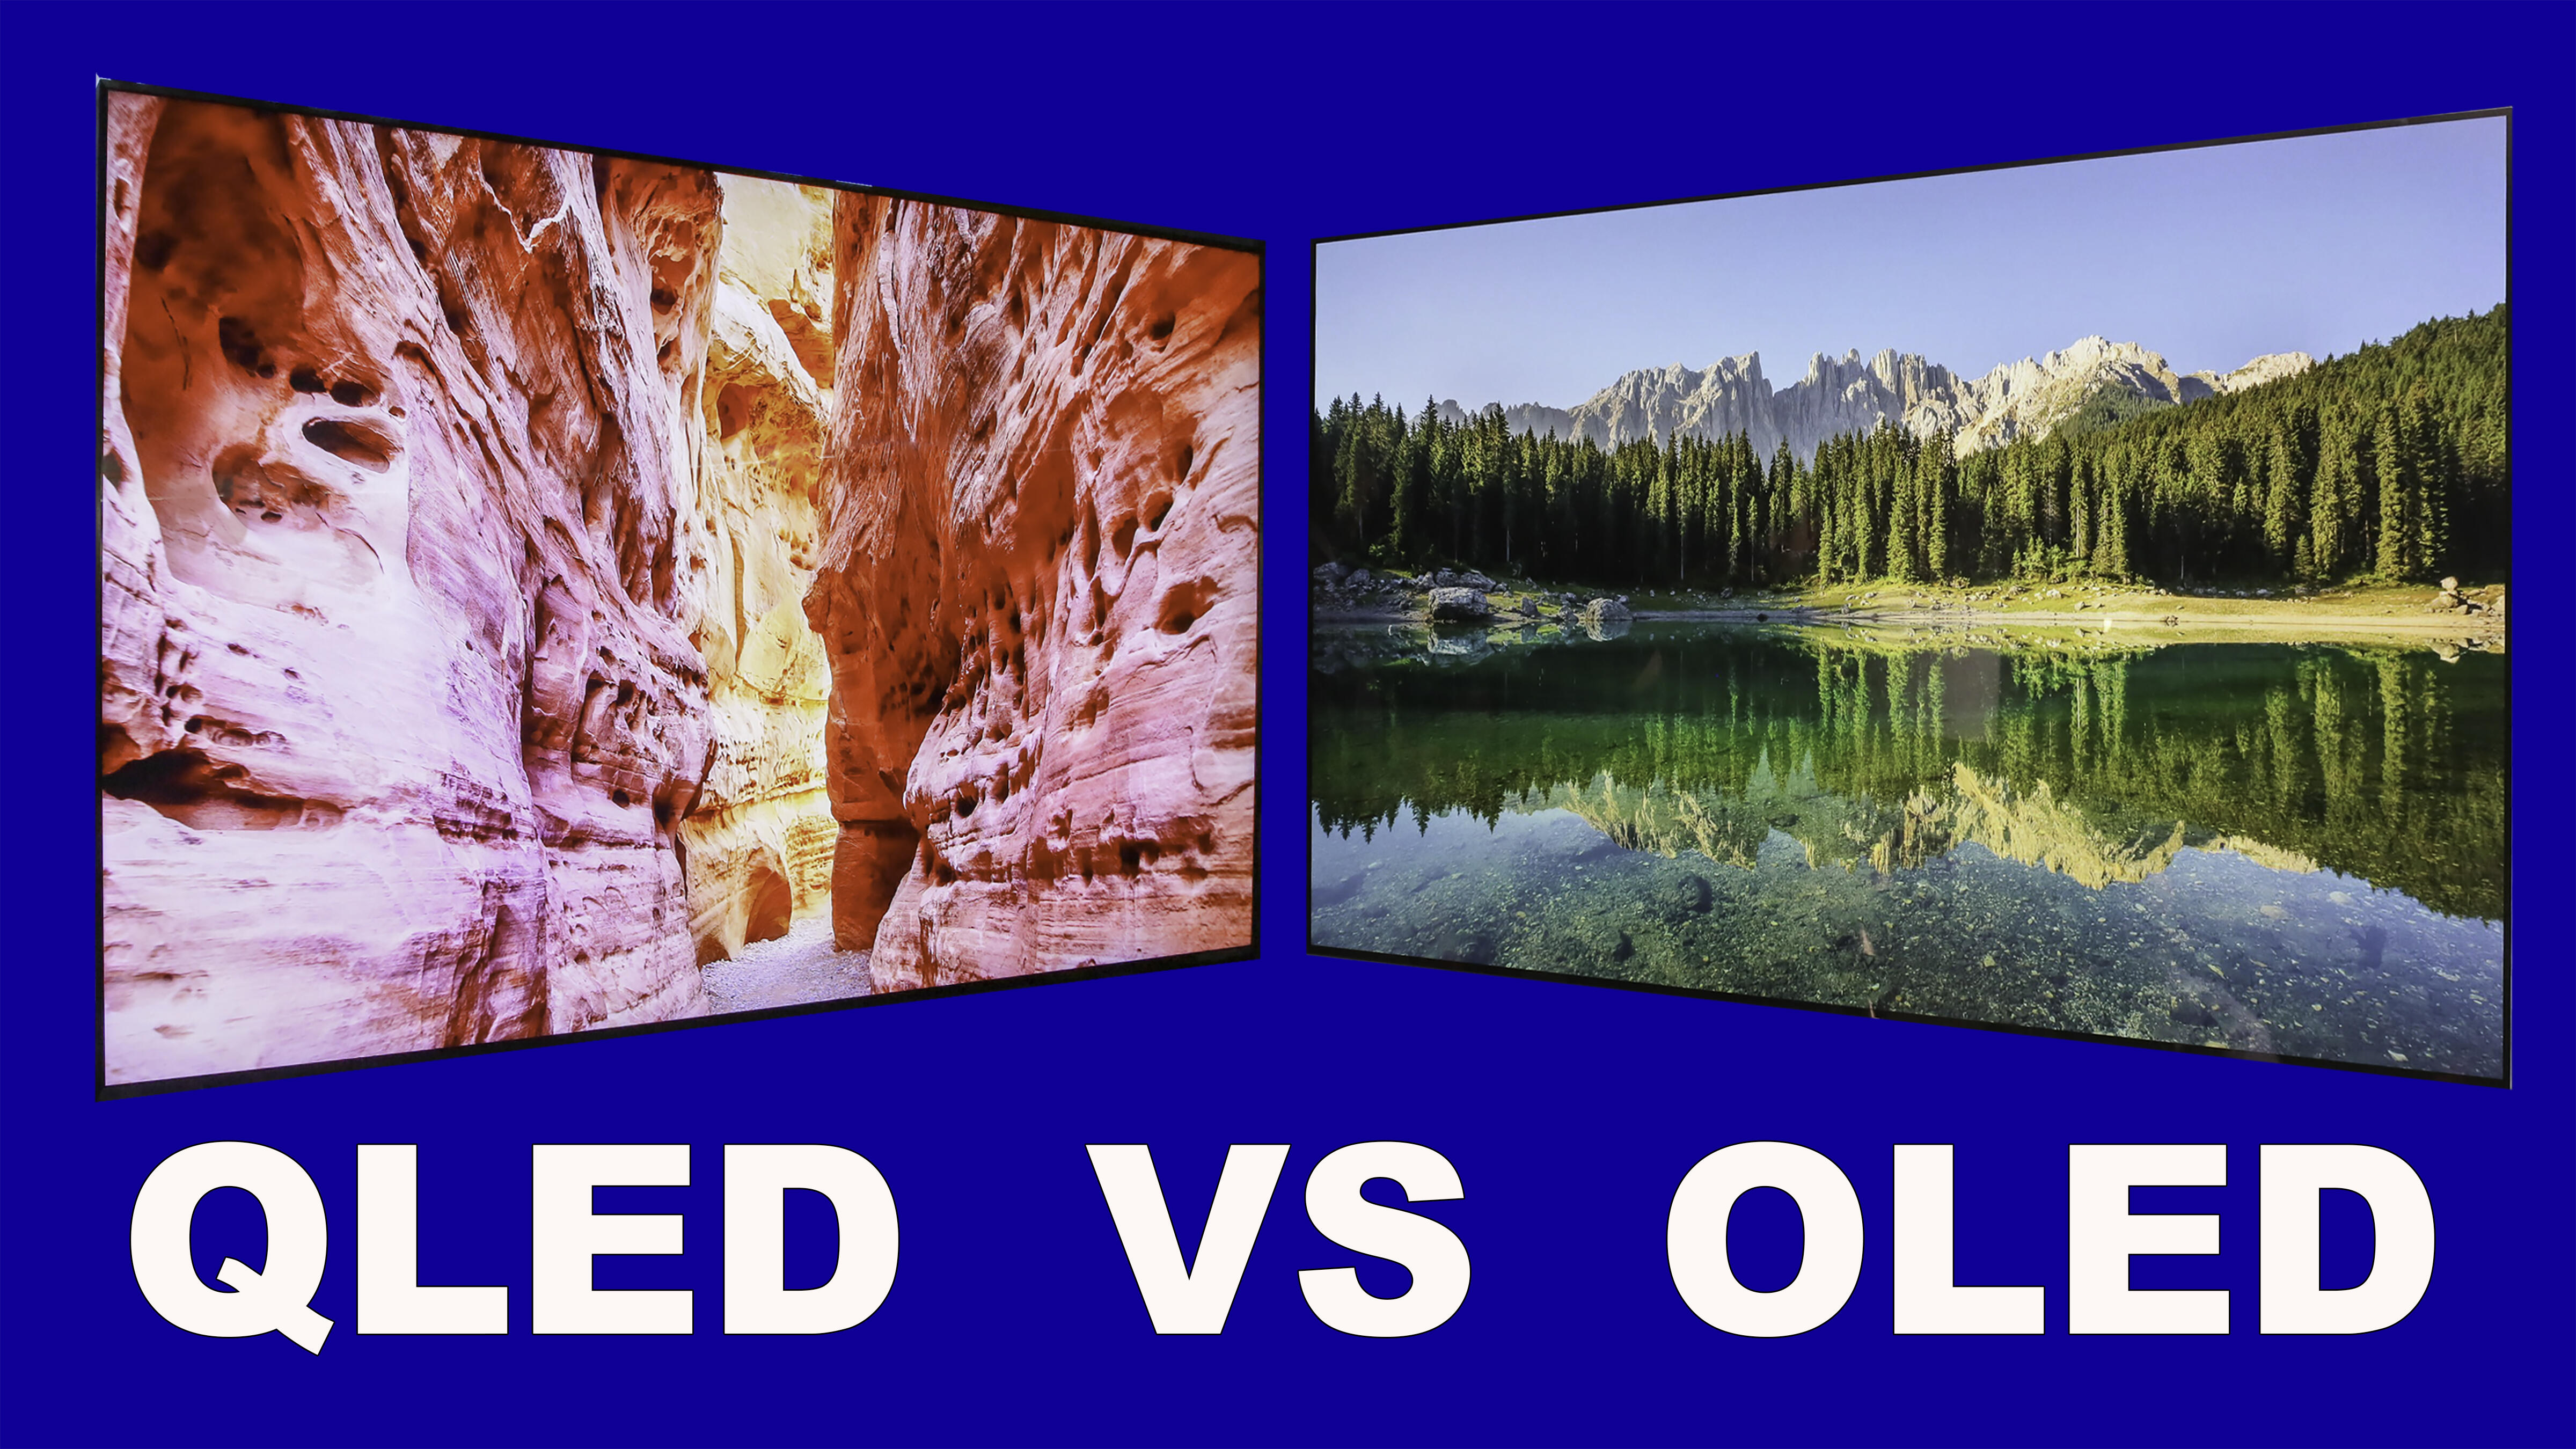 QLED vs. OLED TVs: What's the difference?